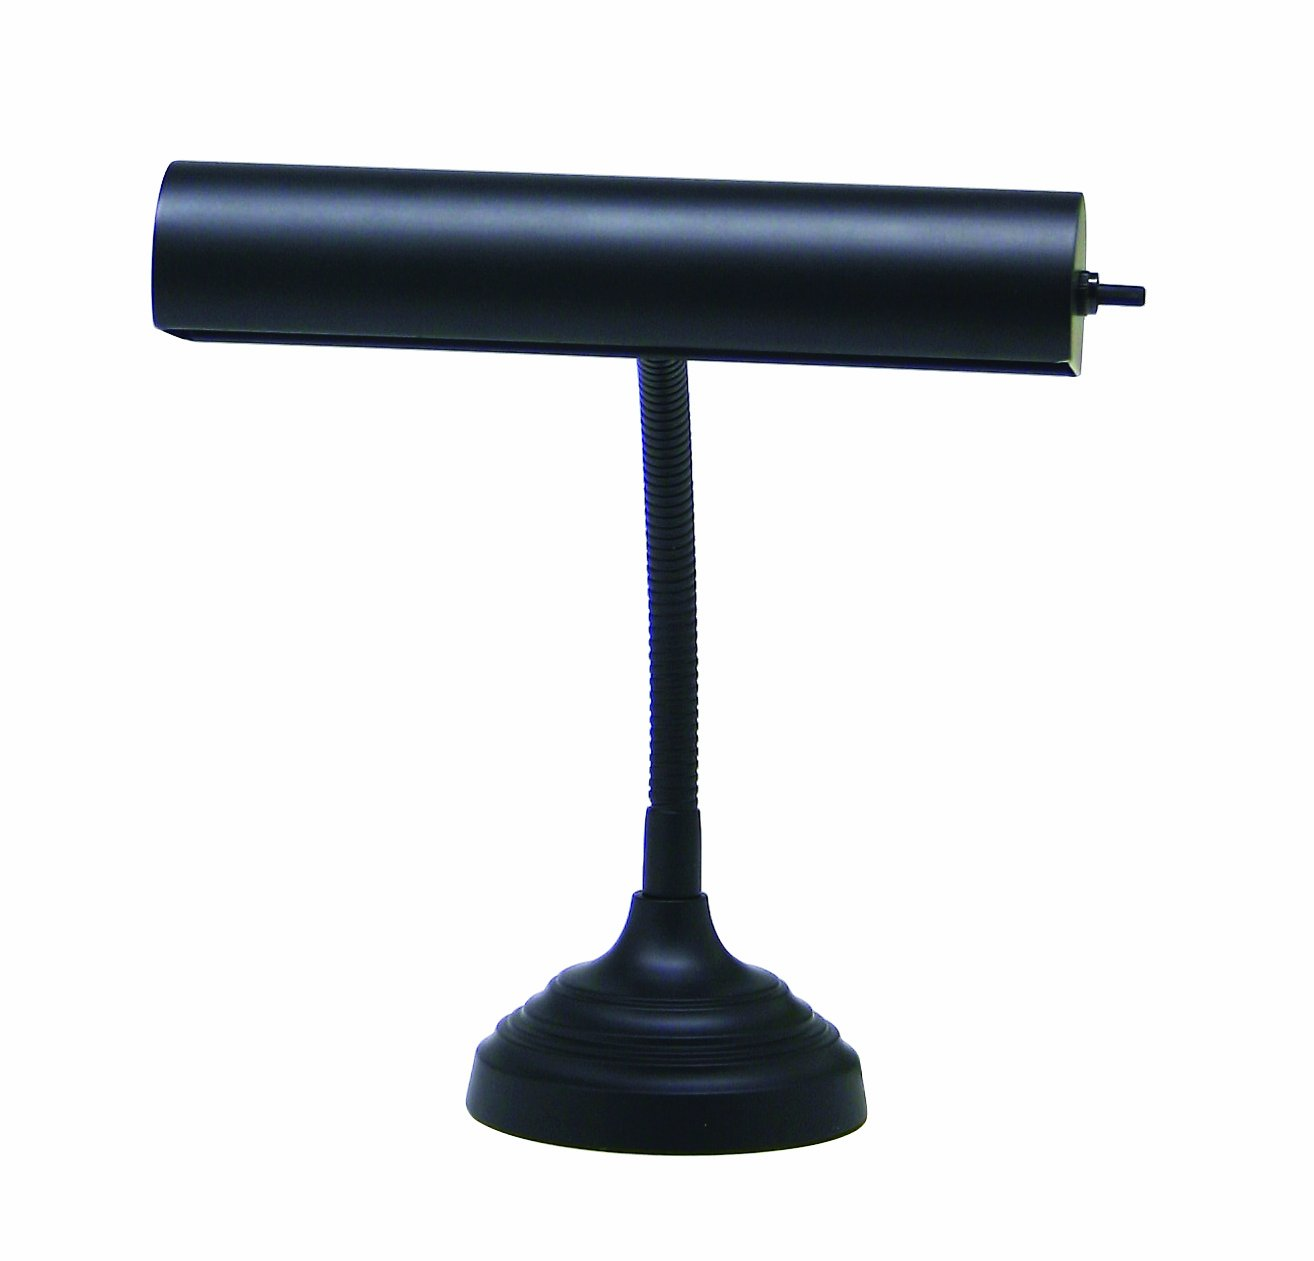 House Of Troy AP10-20-7 Advent Collection 11-1/2-Inch Gooseneck Portable Piano/Desk Lamp, Black by House of Troy